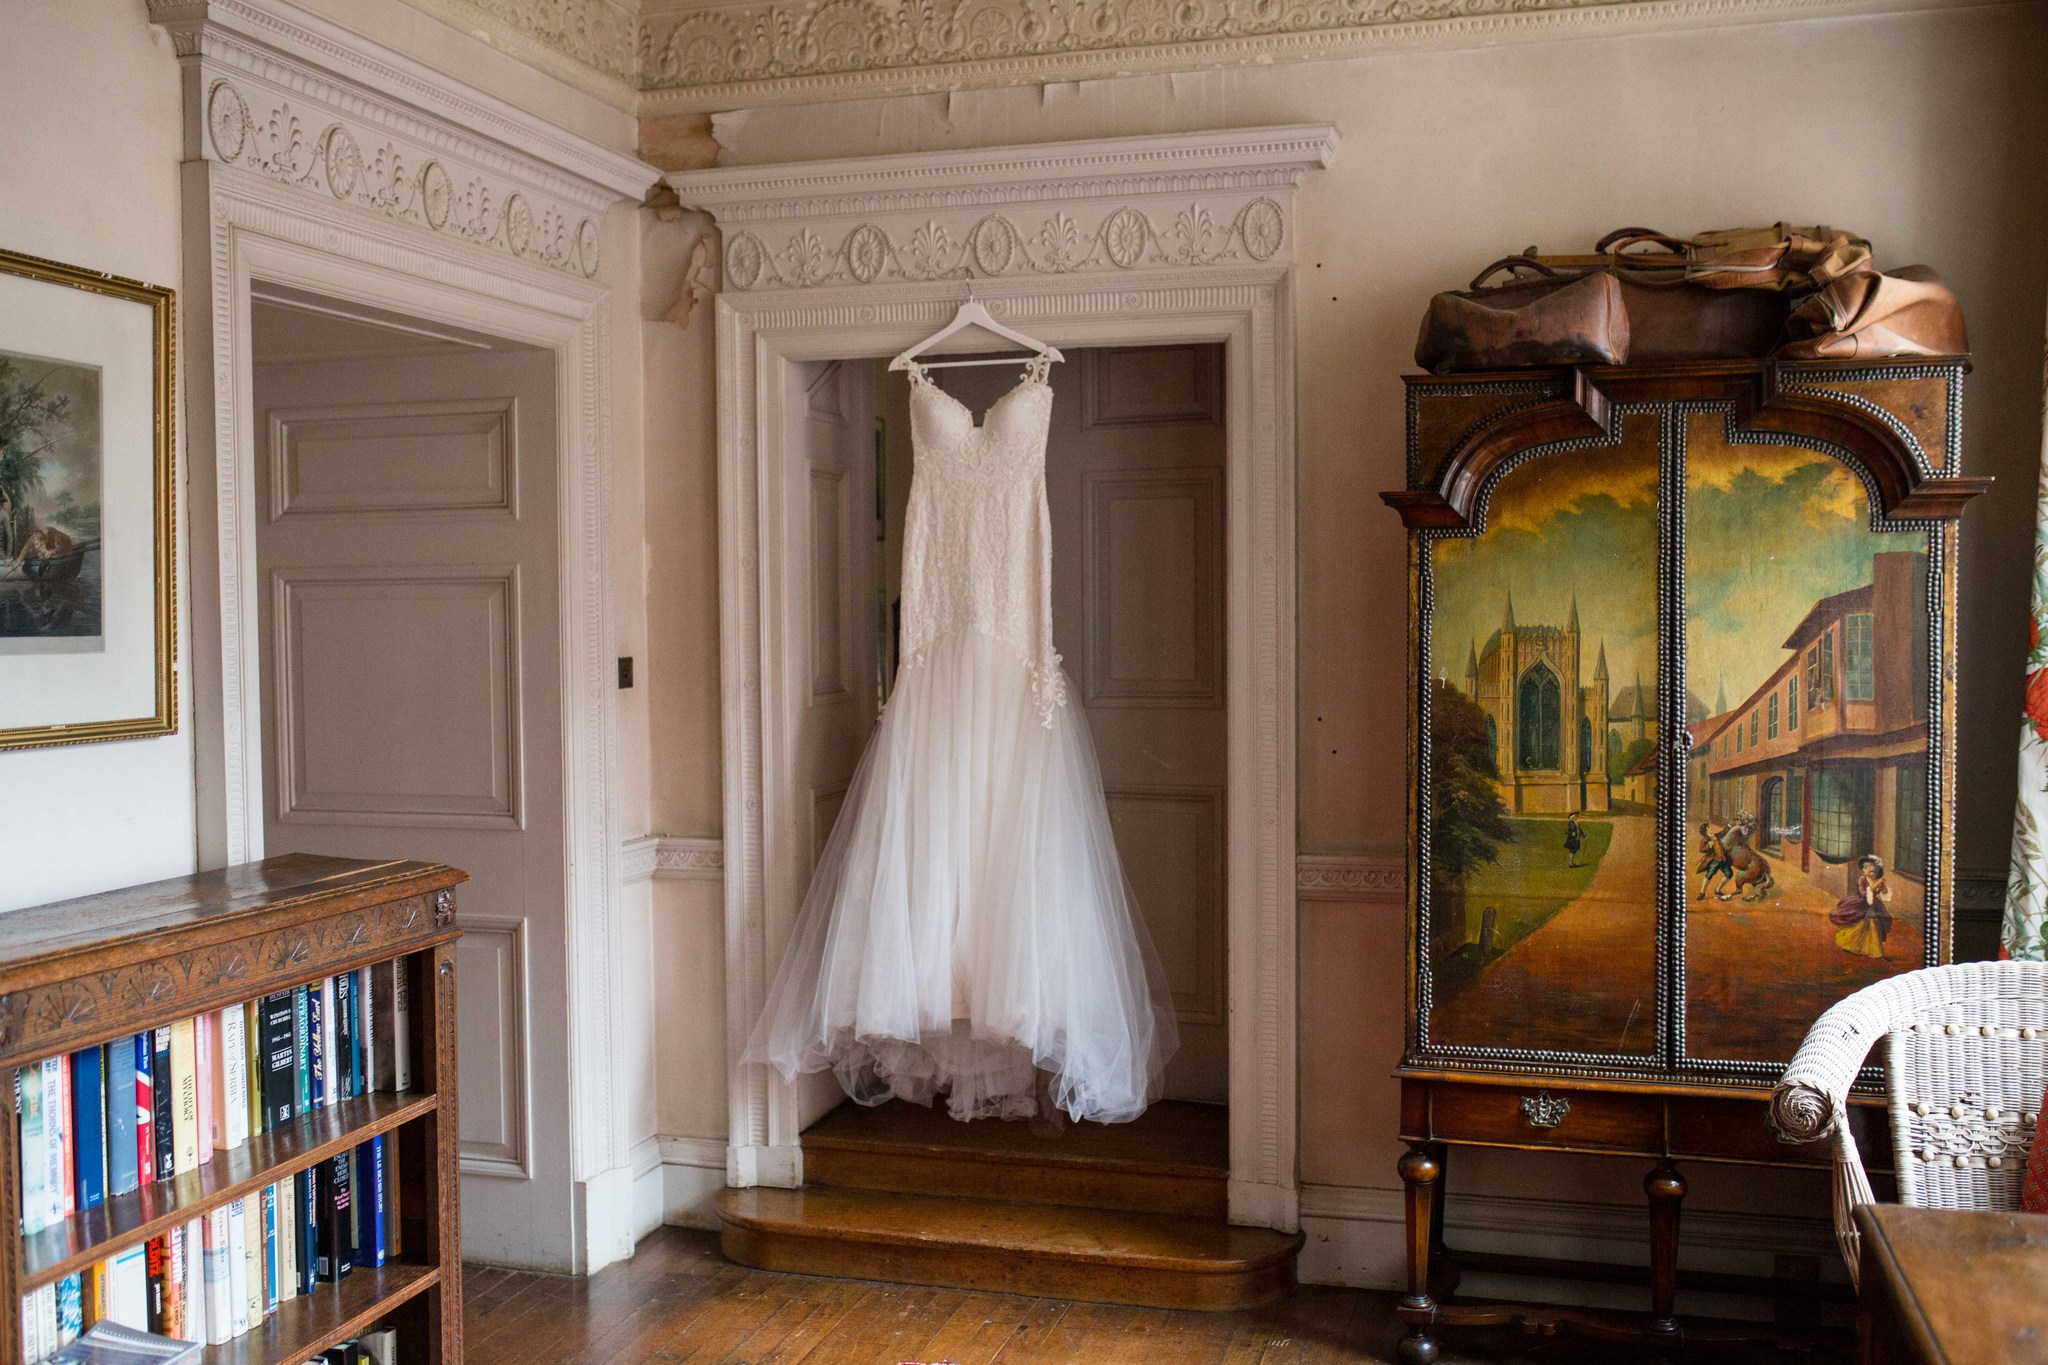 Adi Shlomo Dress Hanging Up Interior Walcot Hall Shropshire